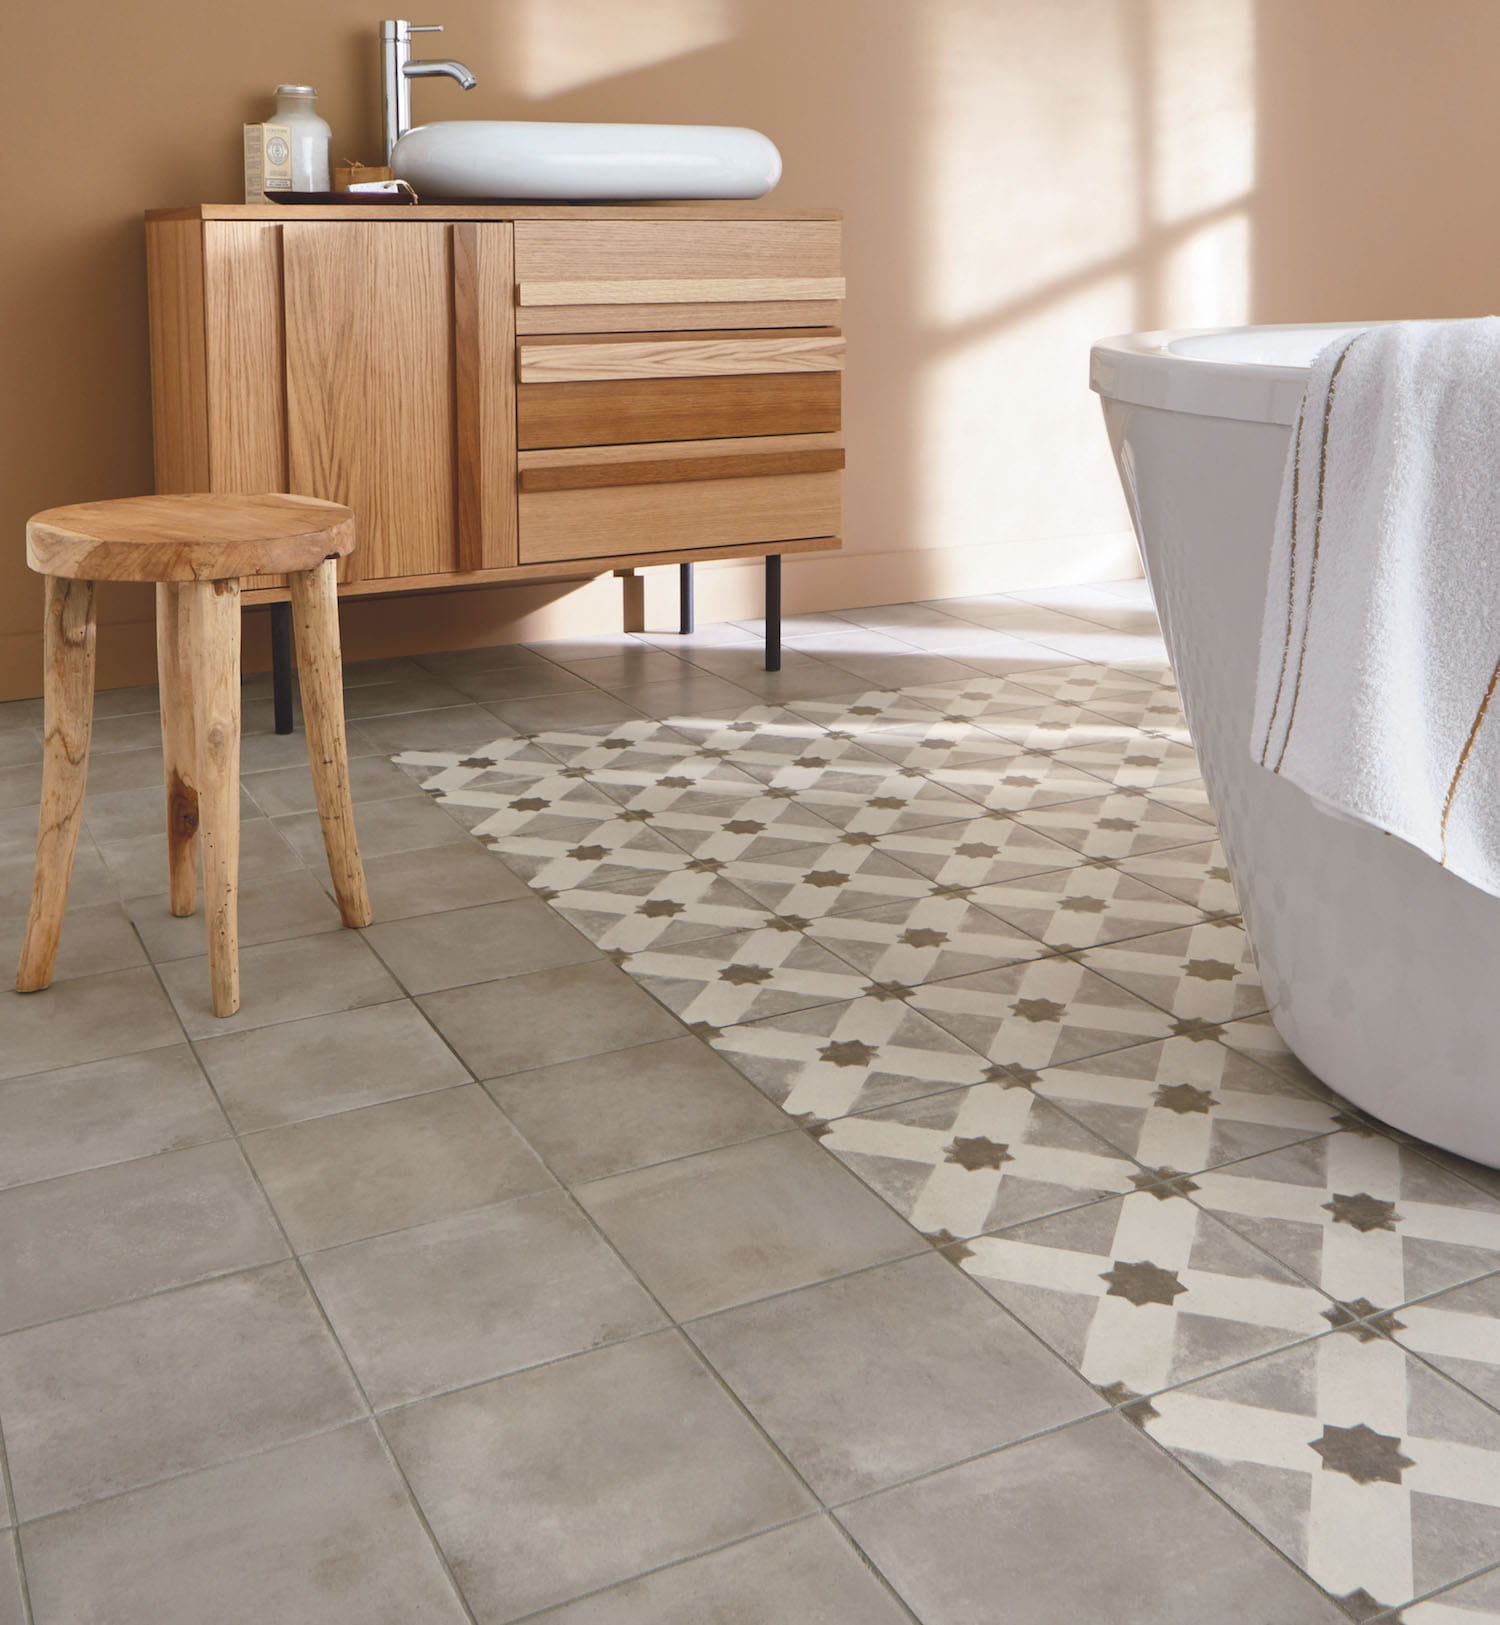 Le mix carrelage et carreaux de ciment for Carrelage pour le sol